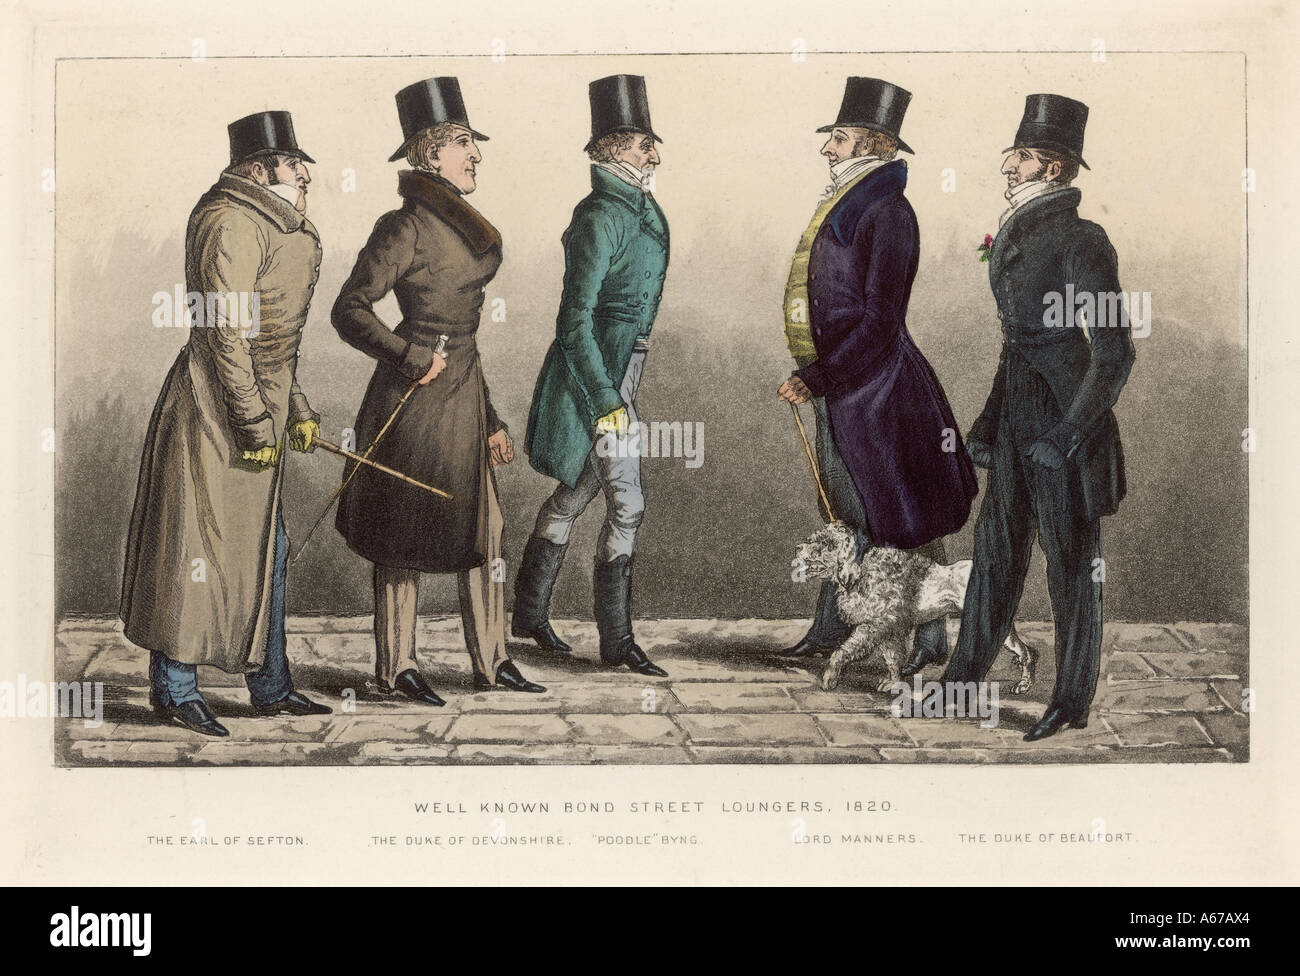 Costume Loungers 1820 - Stock Image